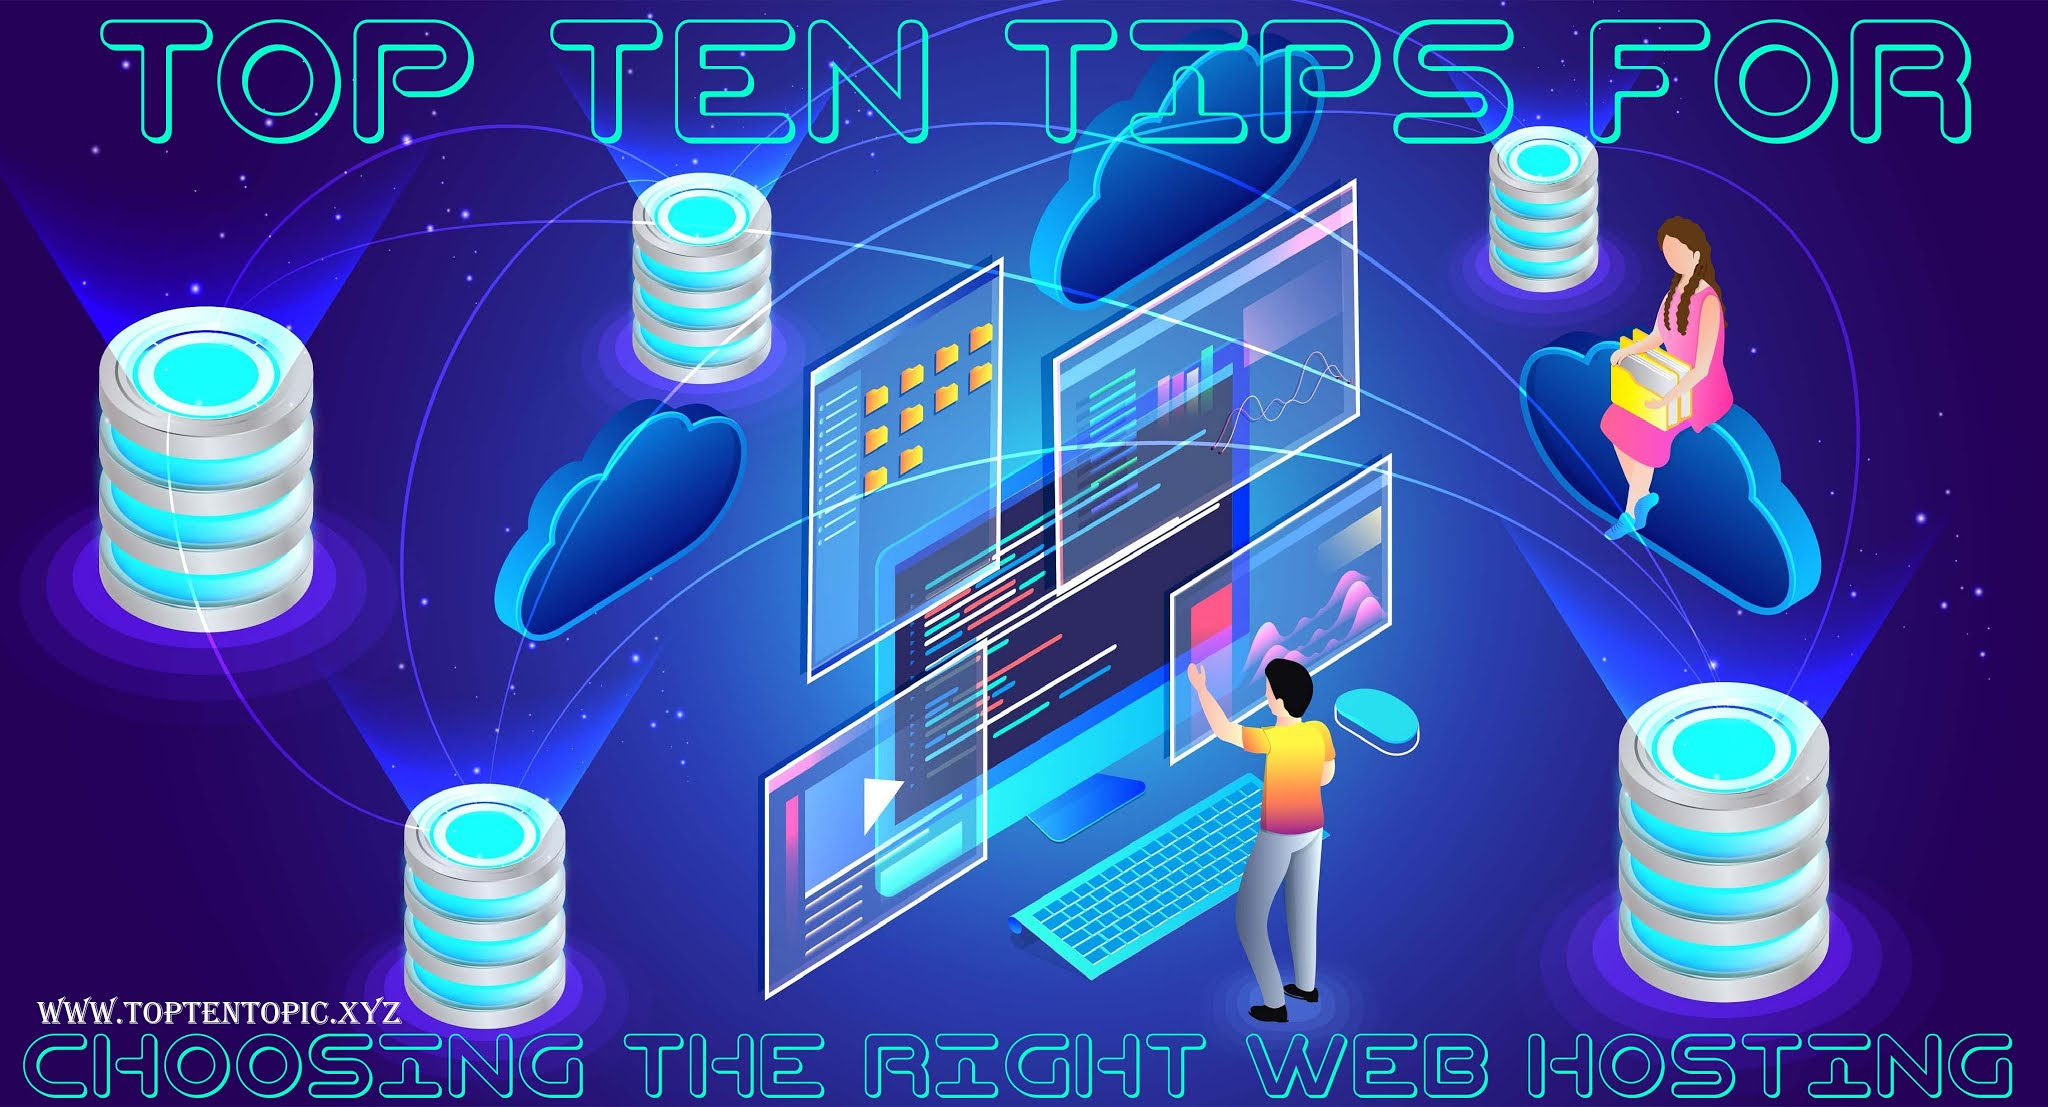 Top Ten Tips for Choosing the Right Web Hosting